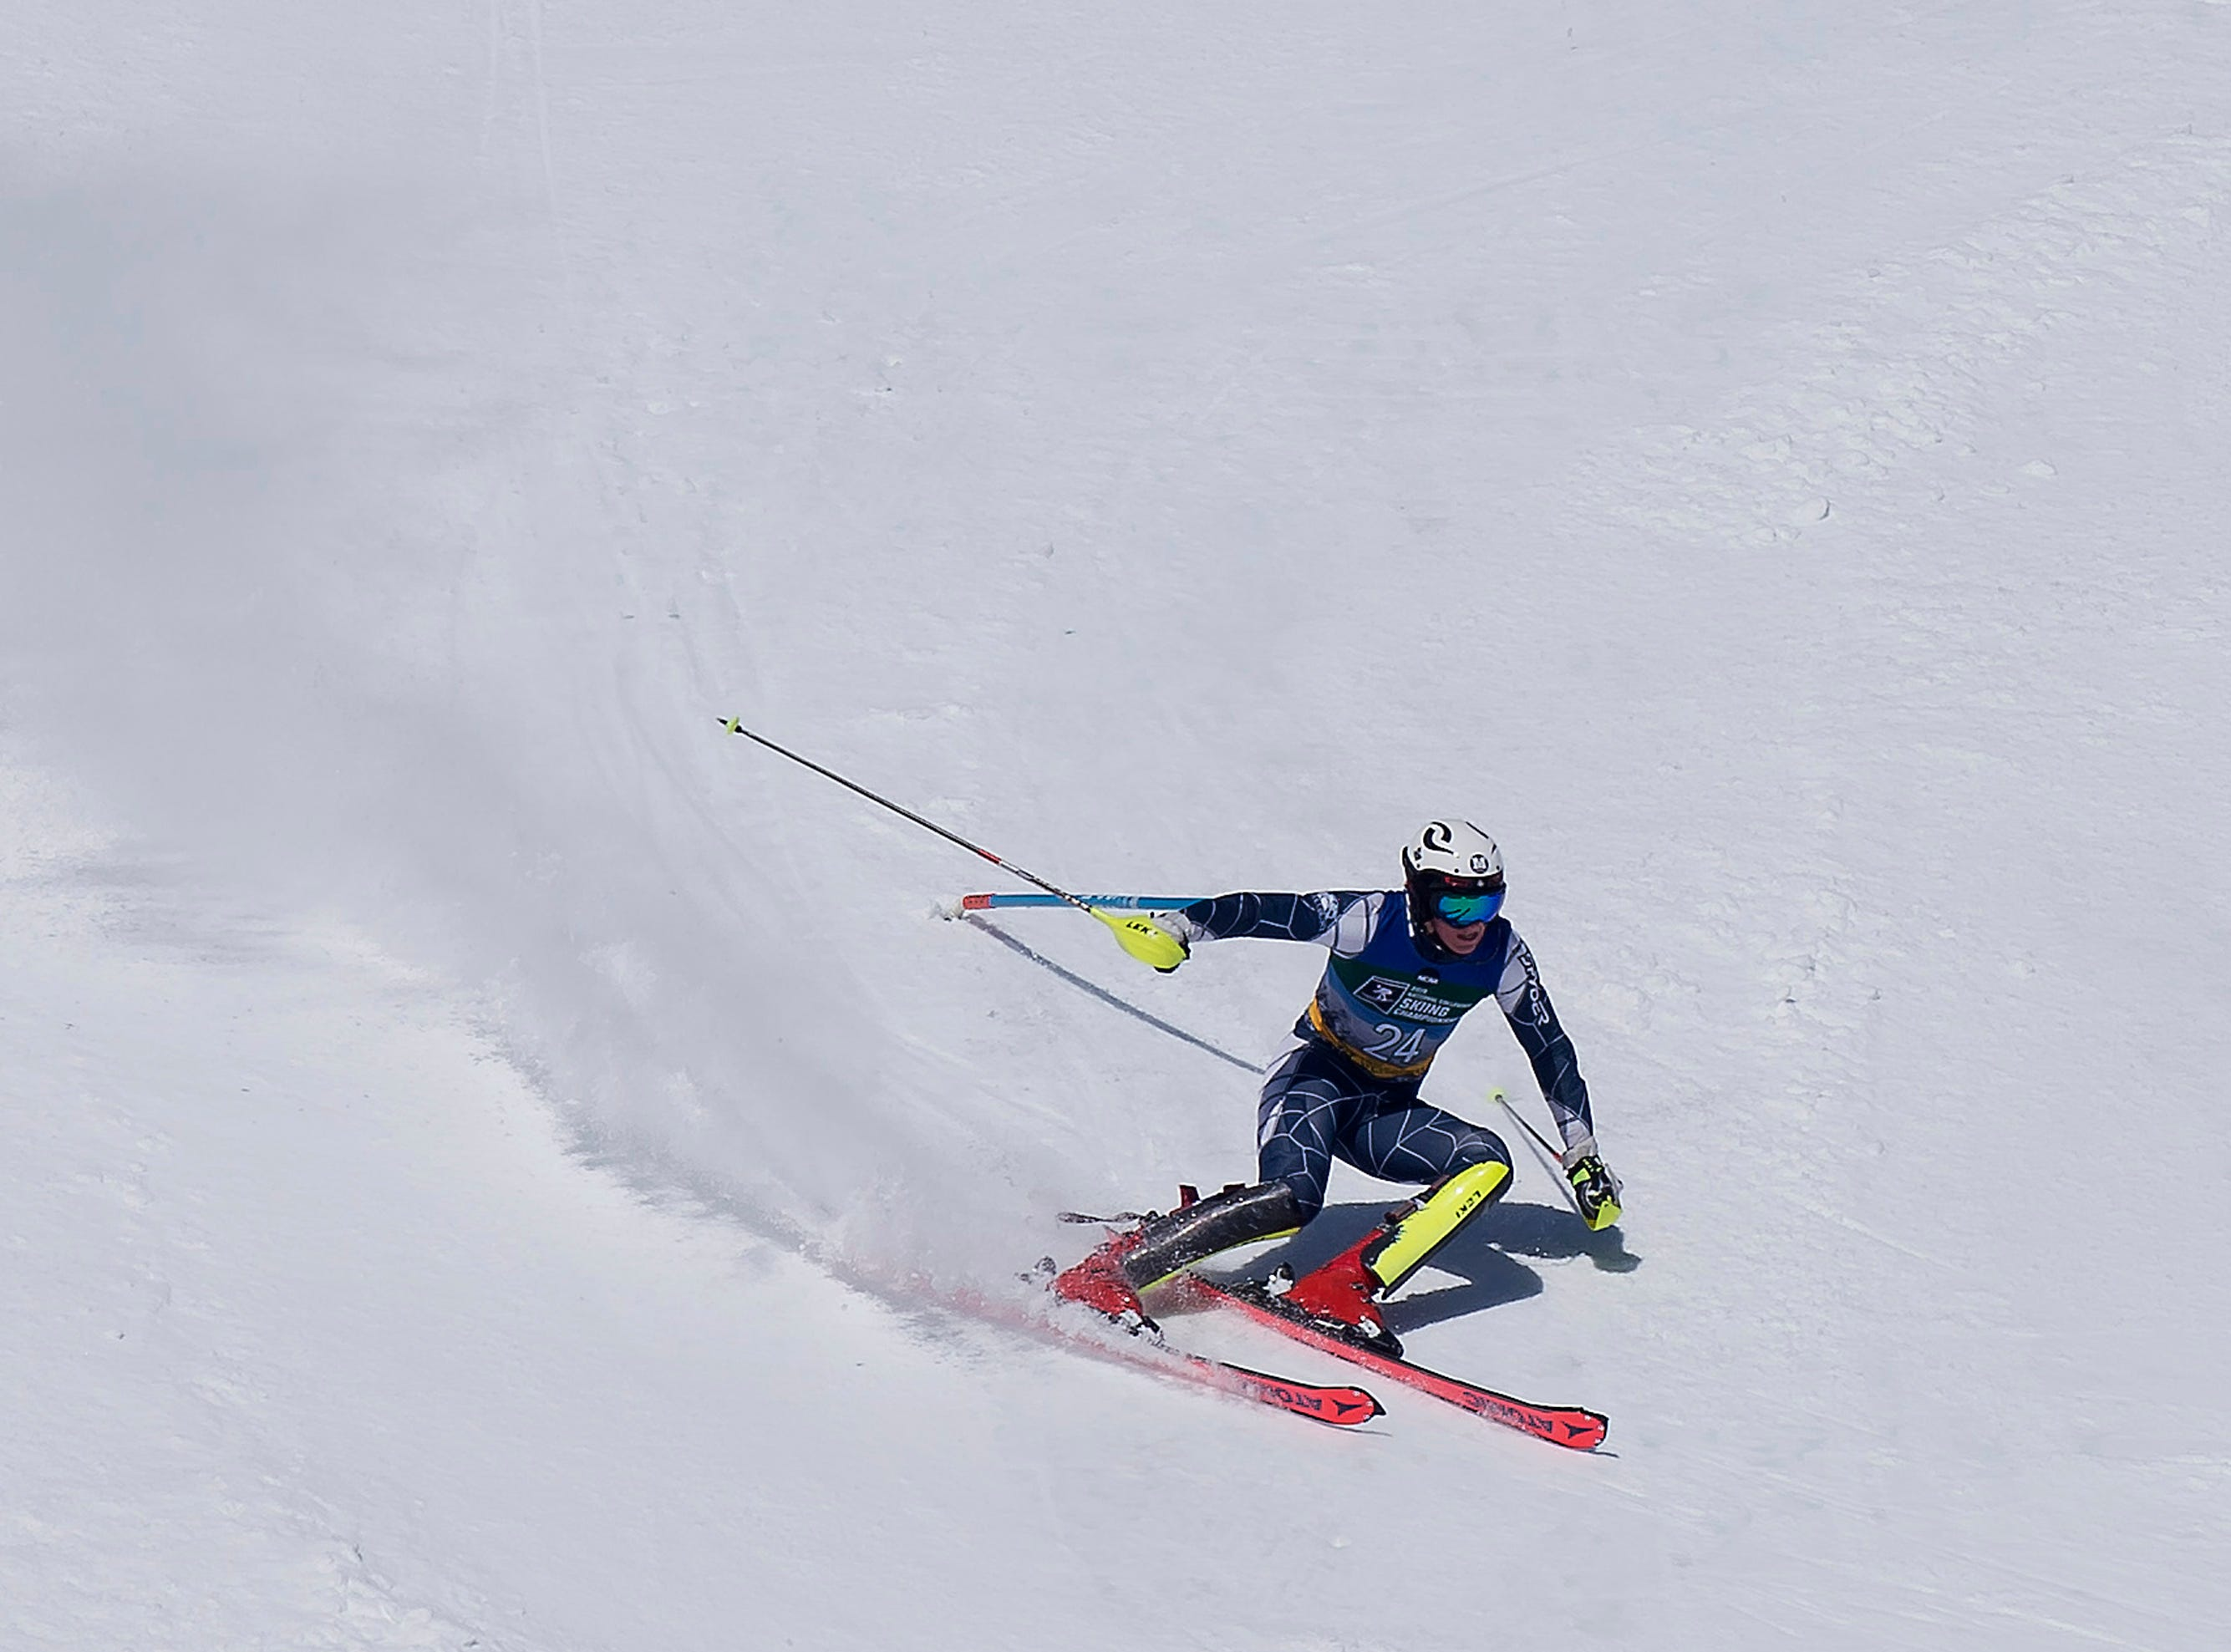 Middlebury's Justin Aiker carves a turn during the NCAA slalom championships on Saturday at Stowe Mountain Resort.